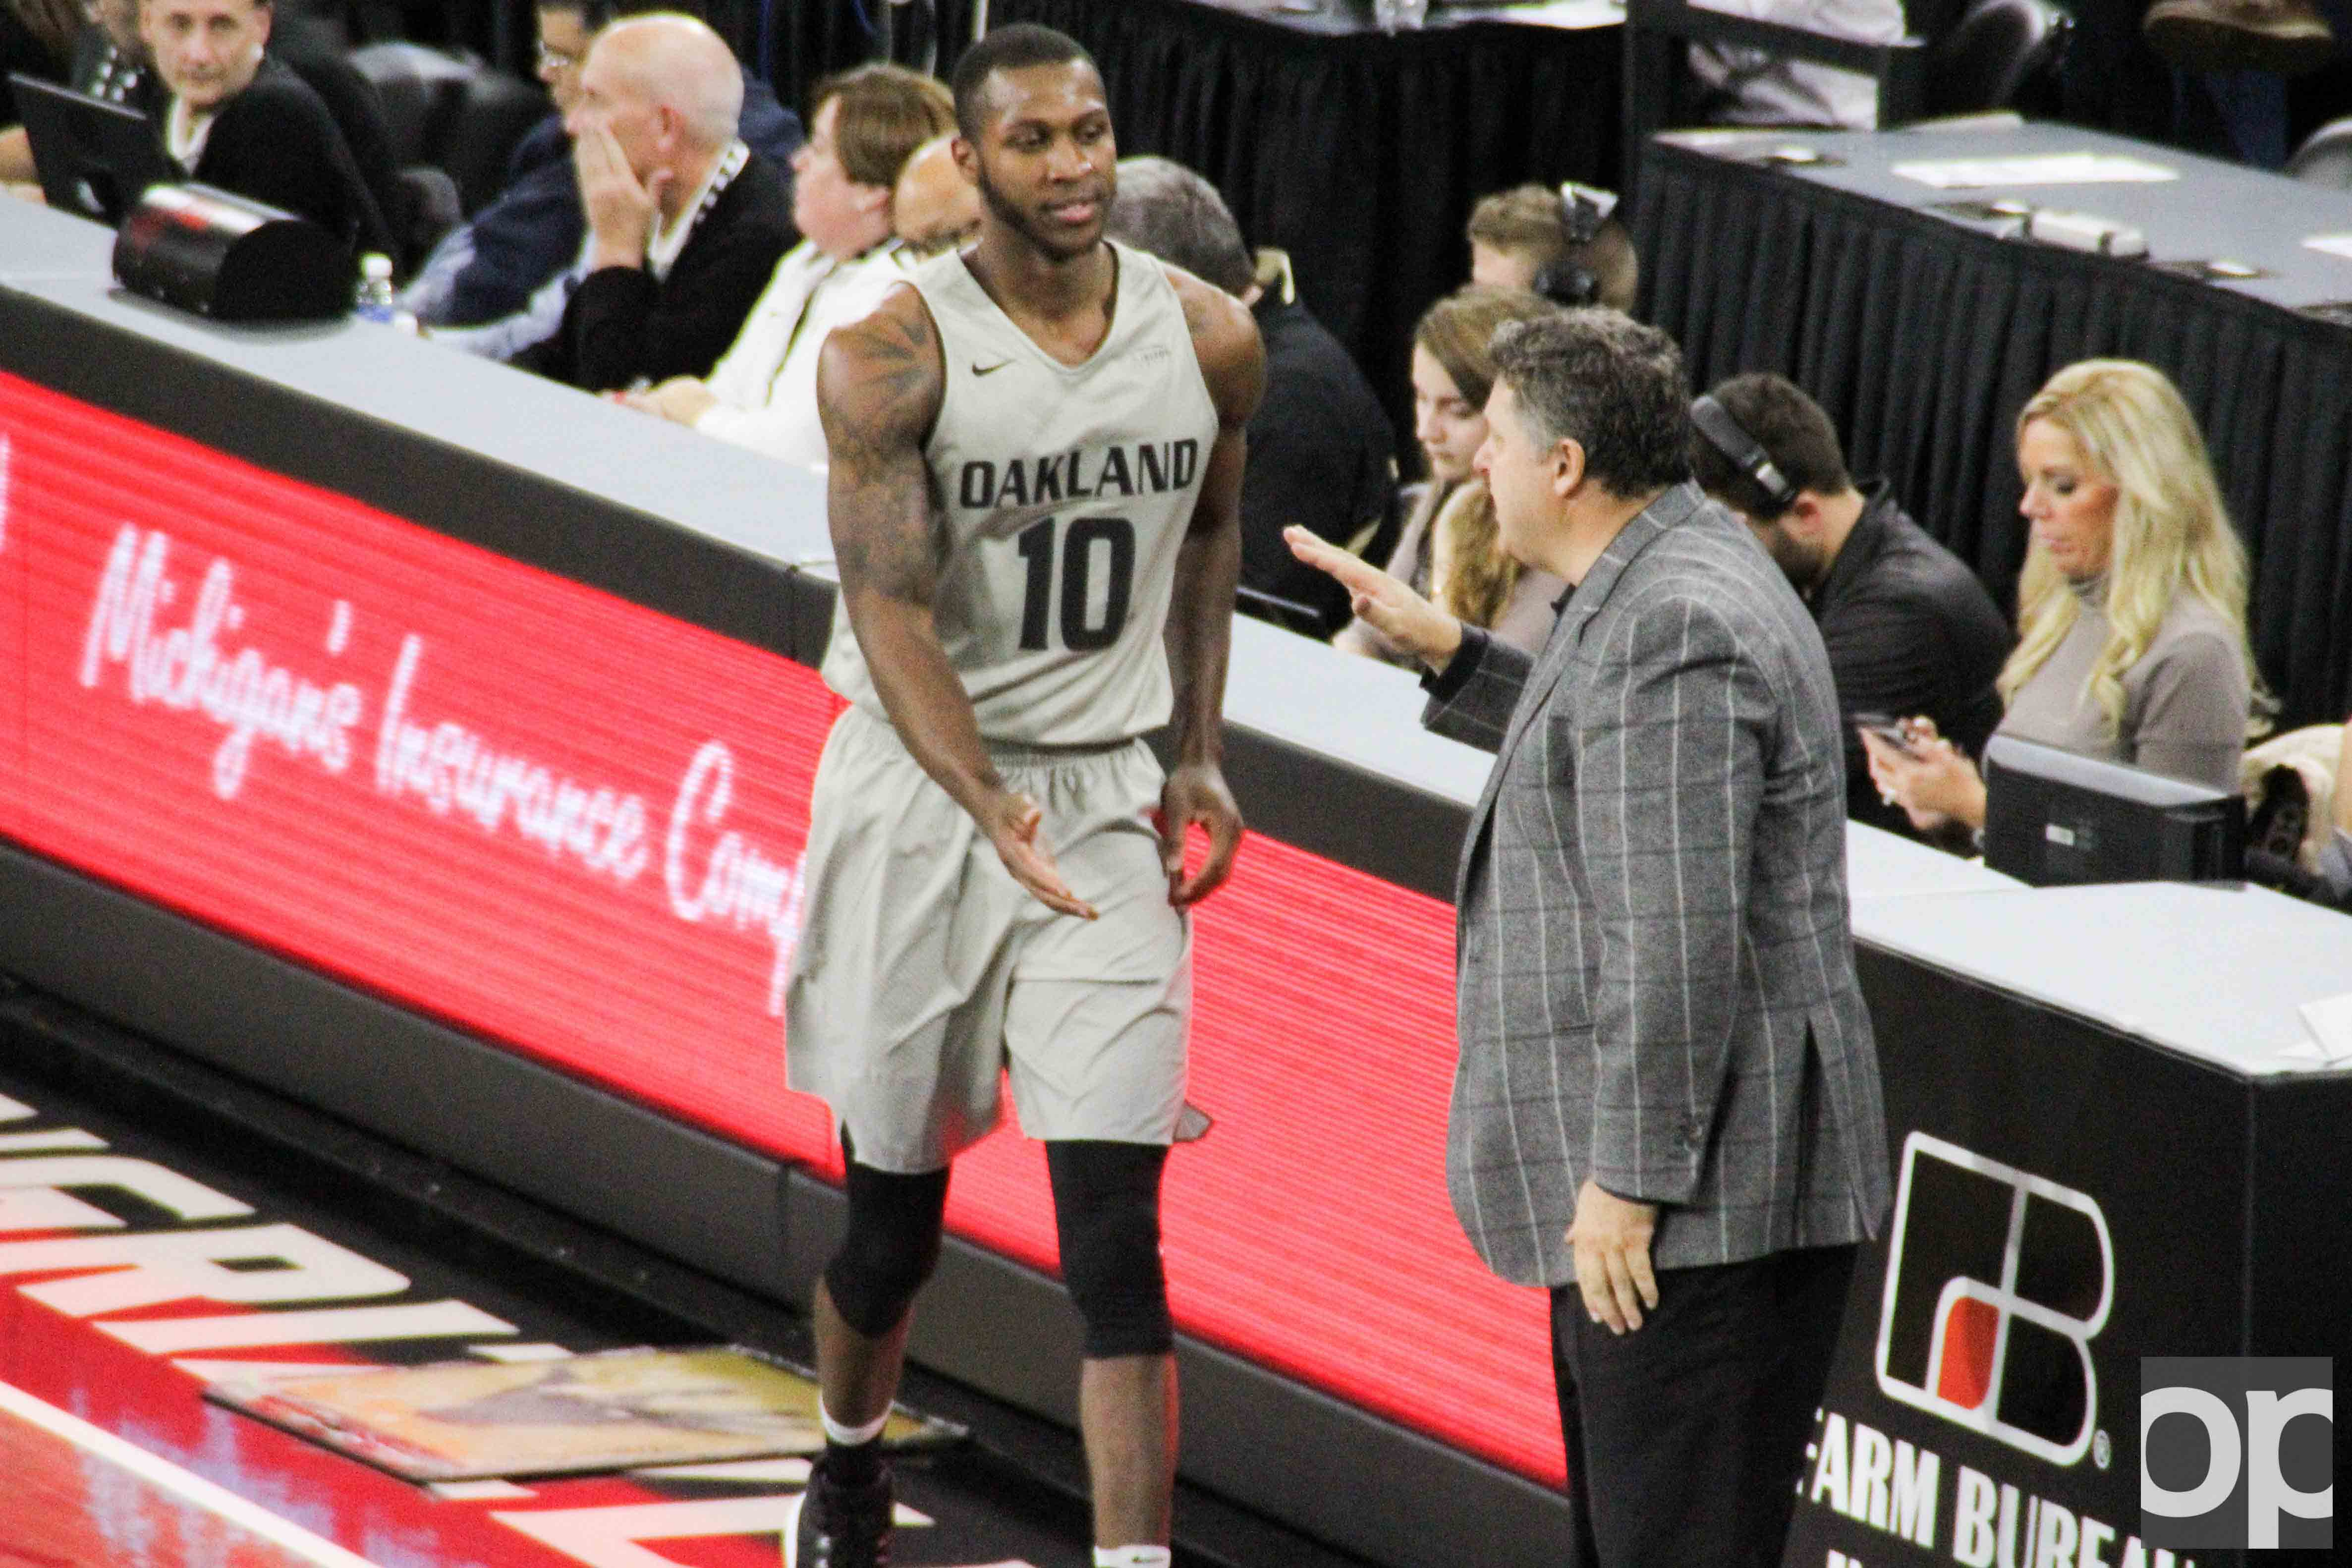 Isaiah Brock greets Head Coach Greg Kampe after checking out of the game against Chicago State on Saturday, Nov. 19, 2016.